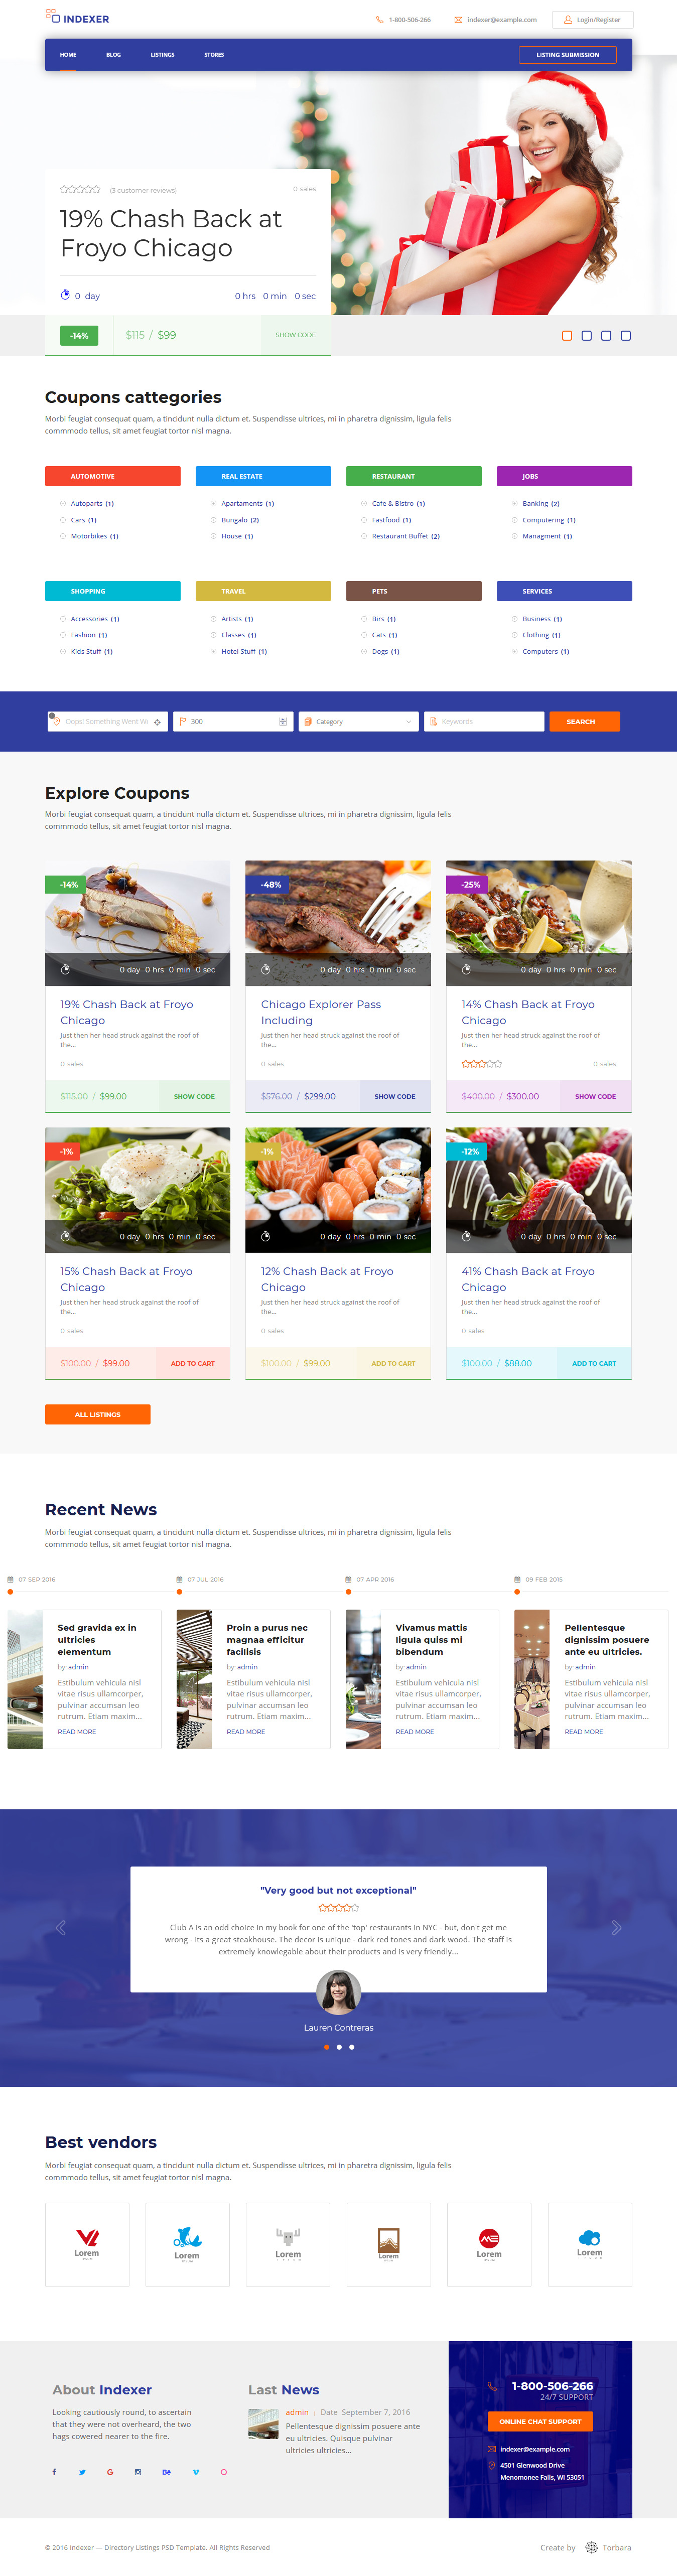 Indexer - Best Premium Marketplace WordPress Themes